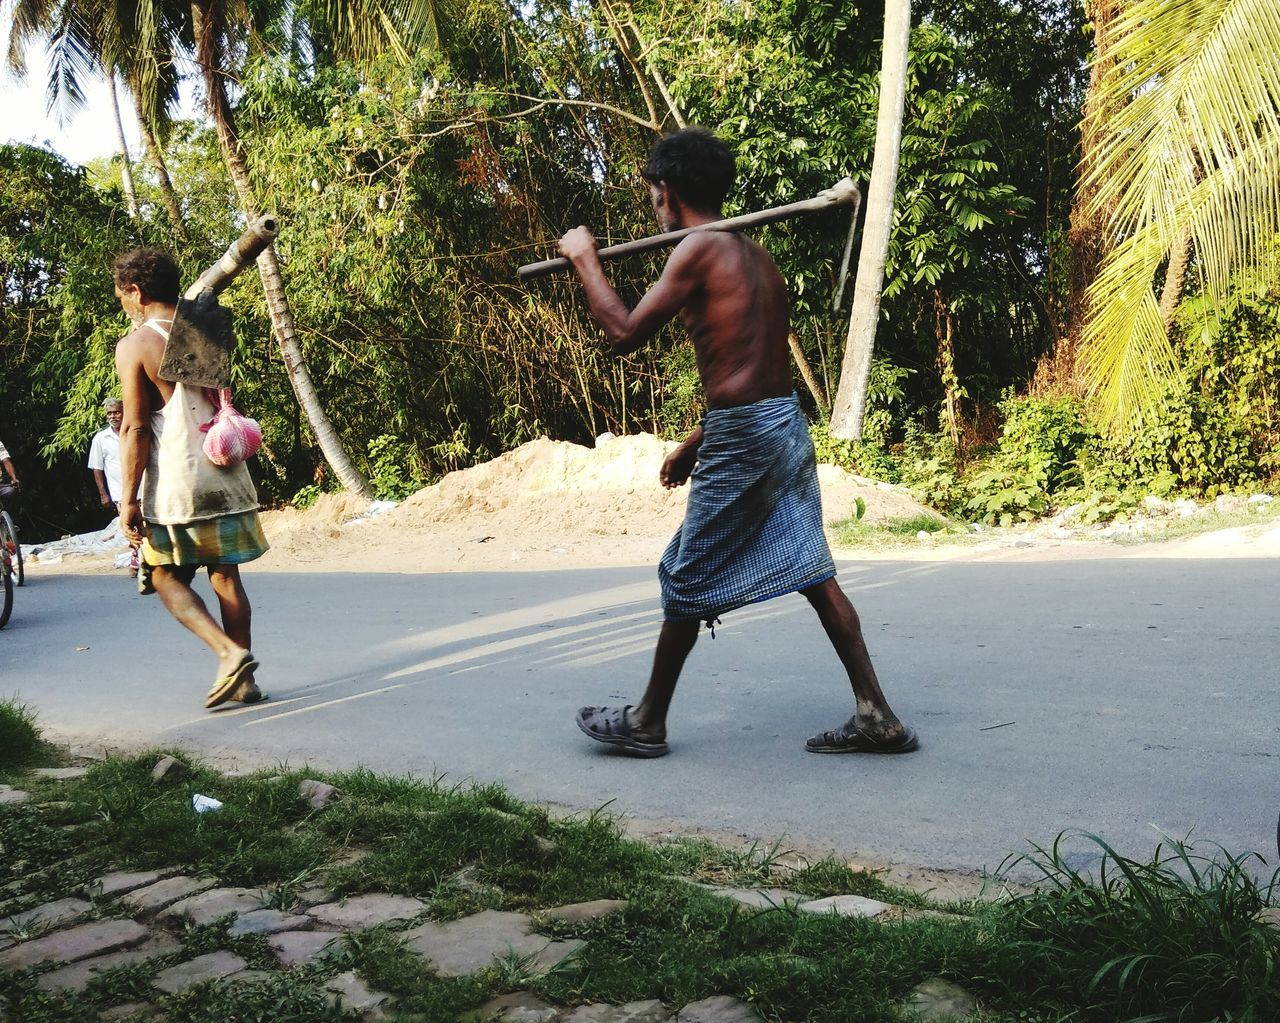 Labour Hardwork Real People Motion Men With Their Weapon They Work We Play The Street Photographer - 2017 EyeEm Awards The Street Photographer - 2017 EyeEm Awards Investing In Quality Of Life The Week On EyeEm